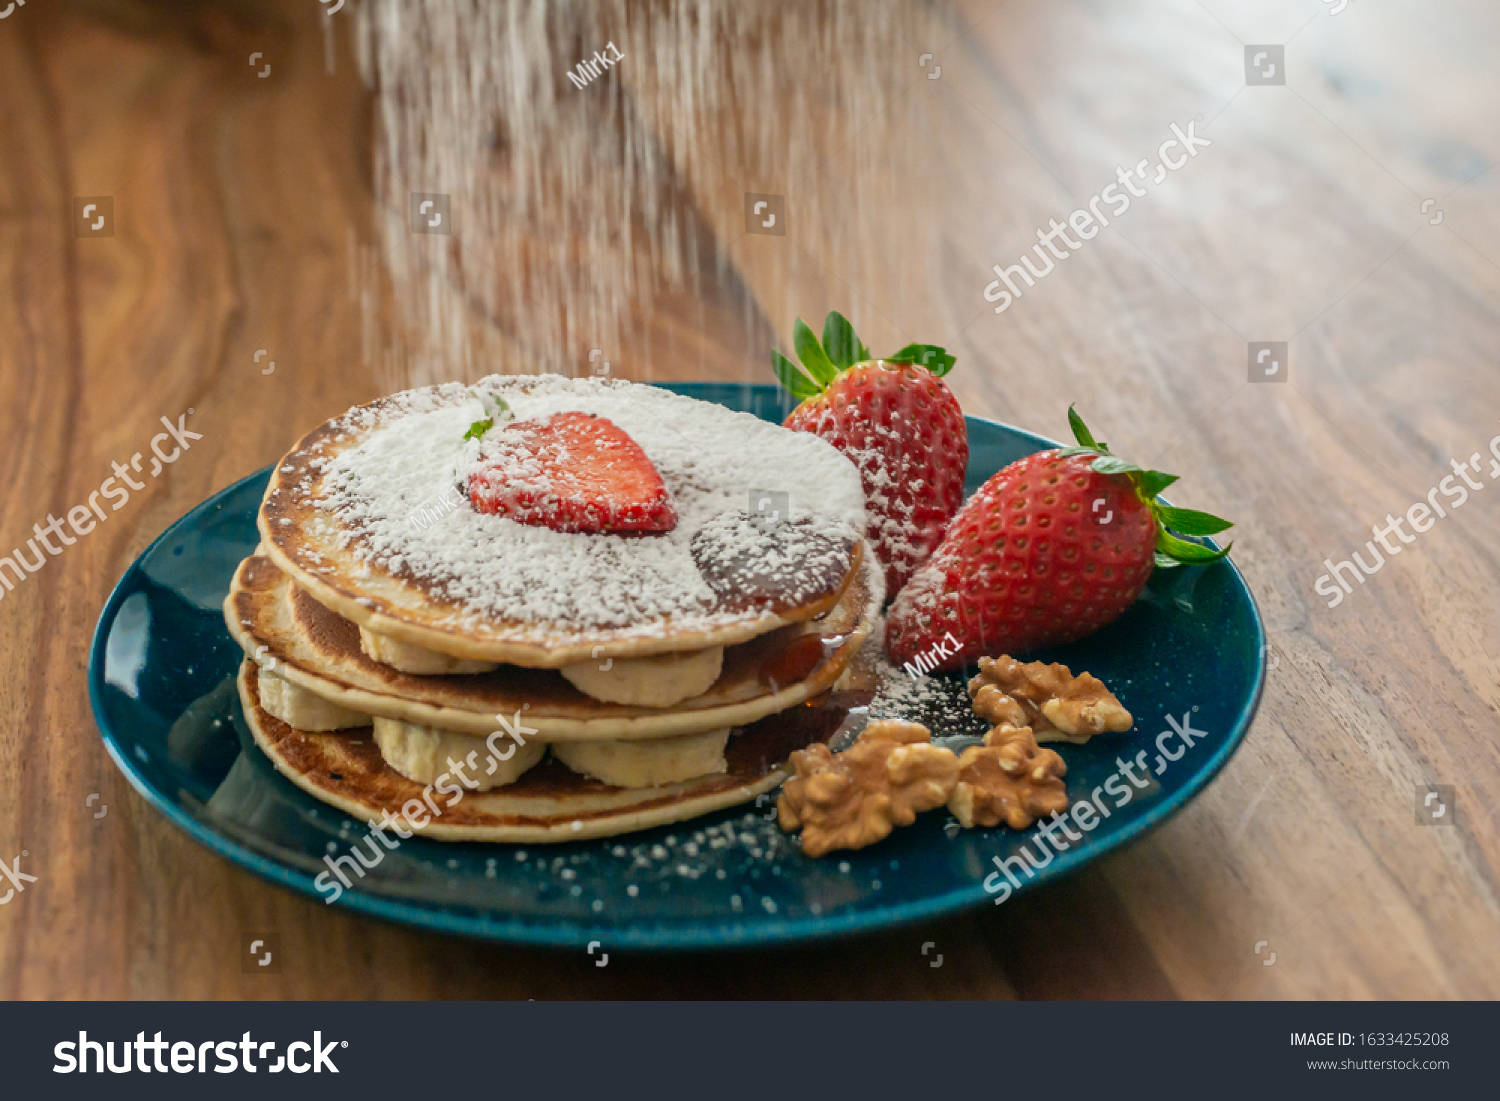 https://lnx.mirkone.it/wp-content/uploads/2016/01/stock-photo-sunday-breakfast-excellent-pancakes-with-bananas-strawberries-walnuts-powdered-sugar-and-maple-1633425208.jpg